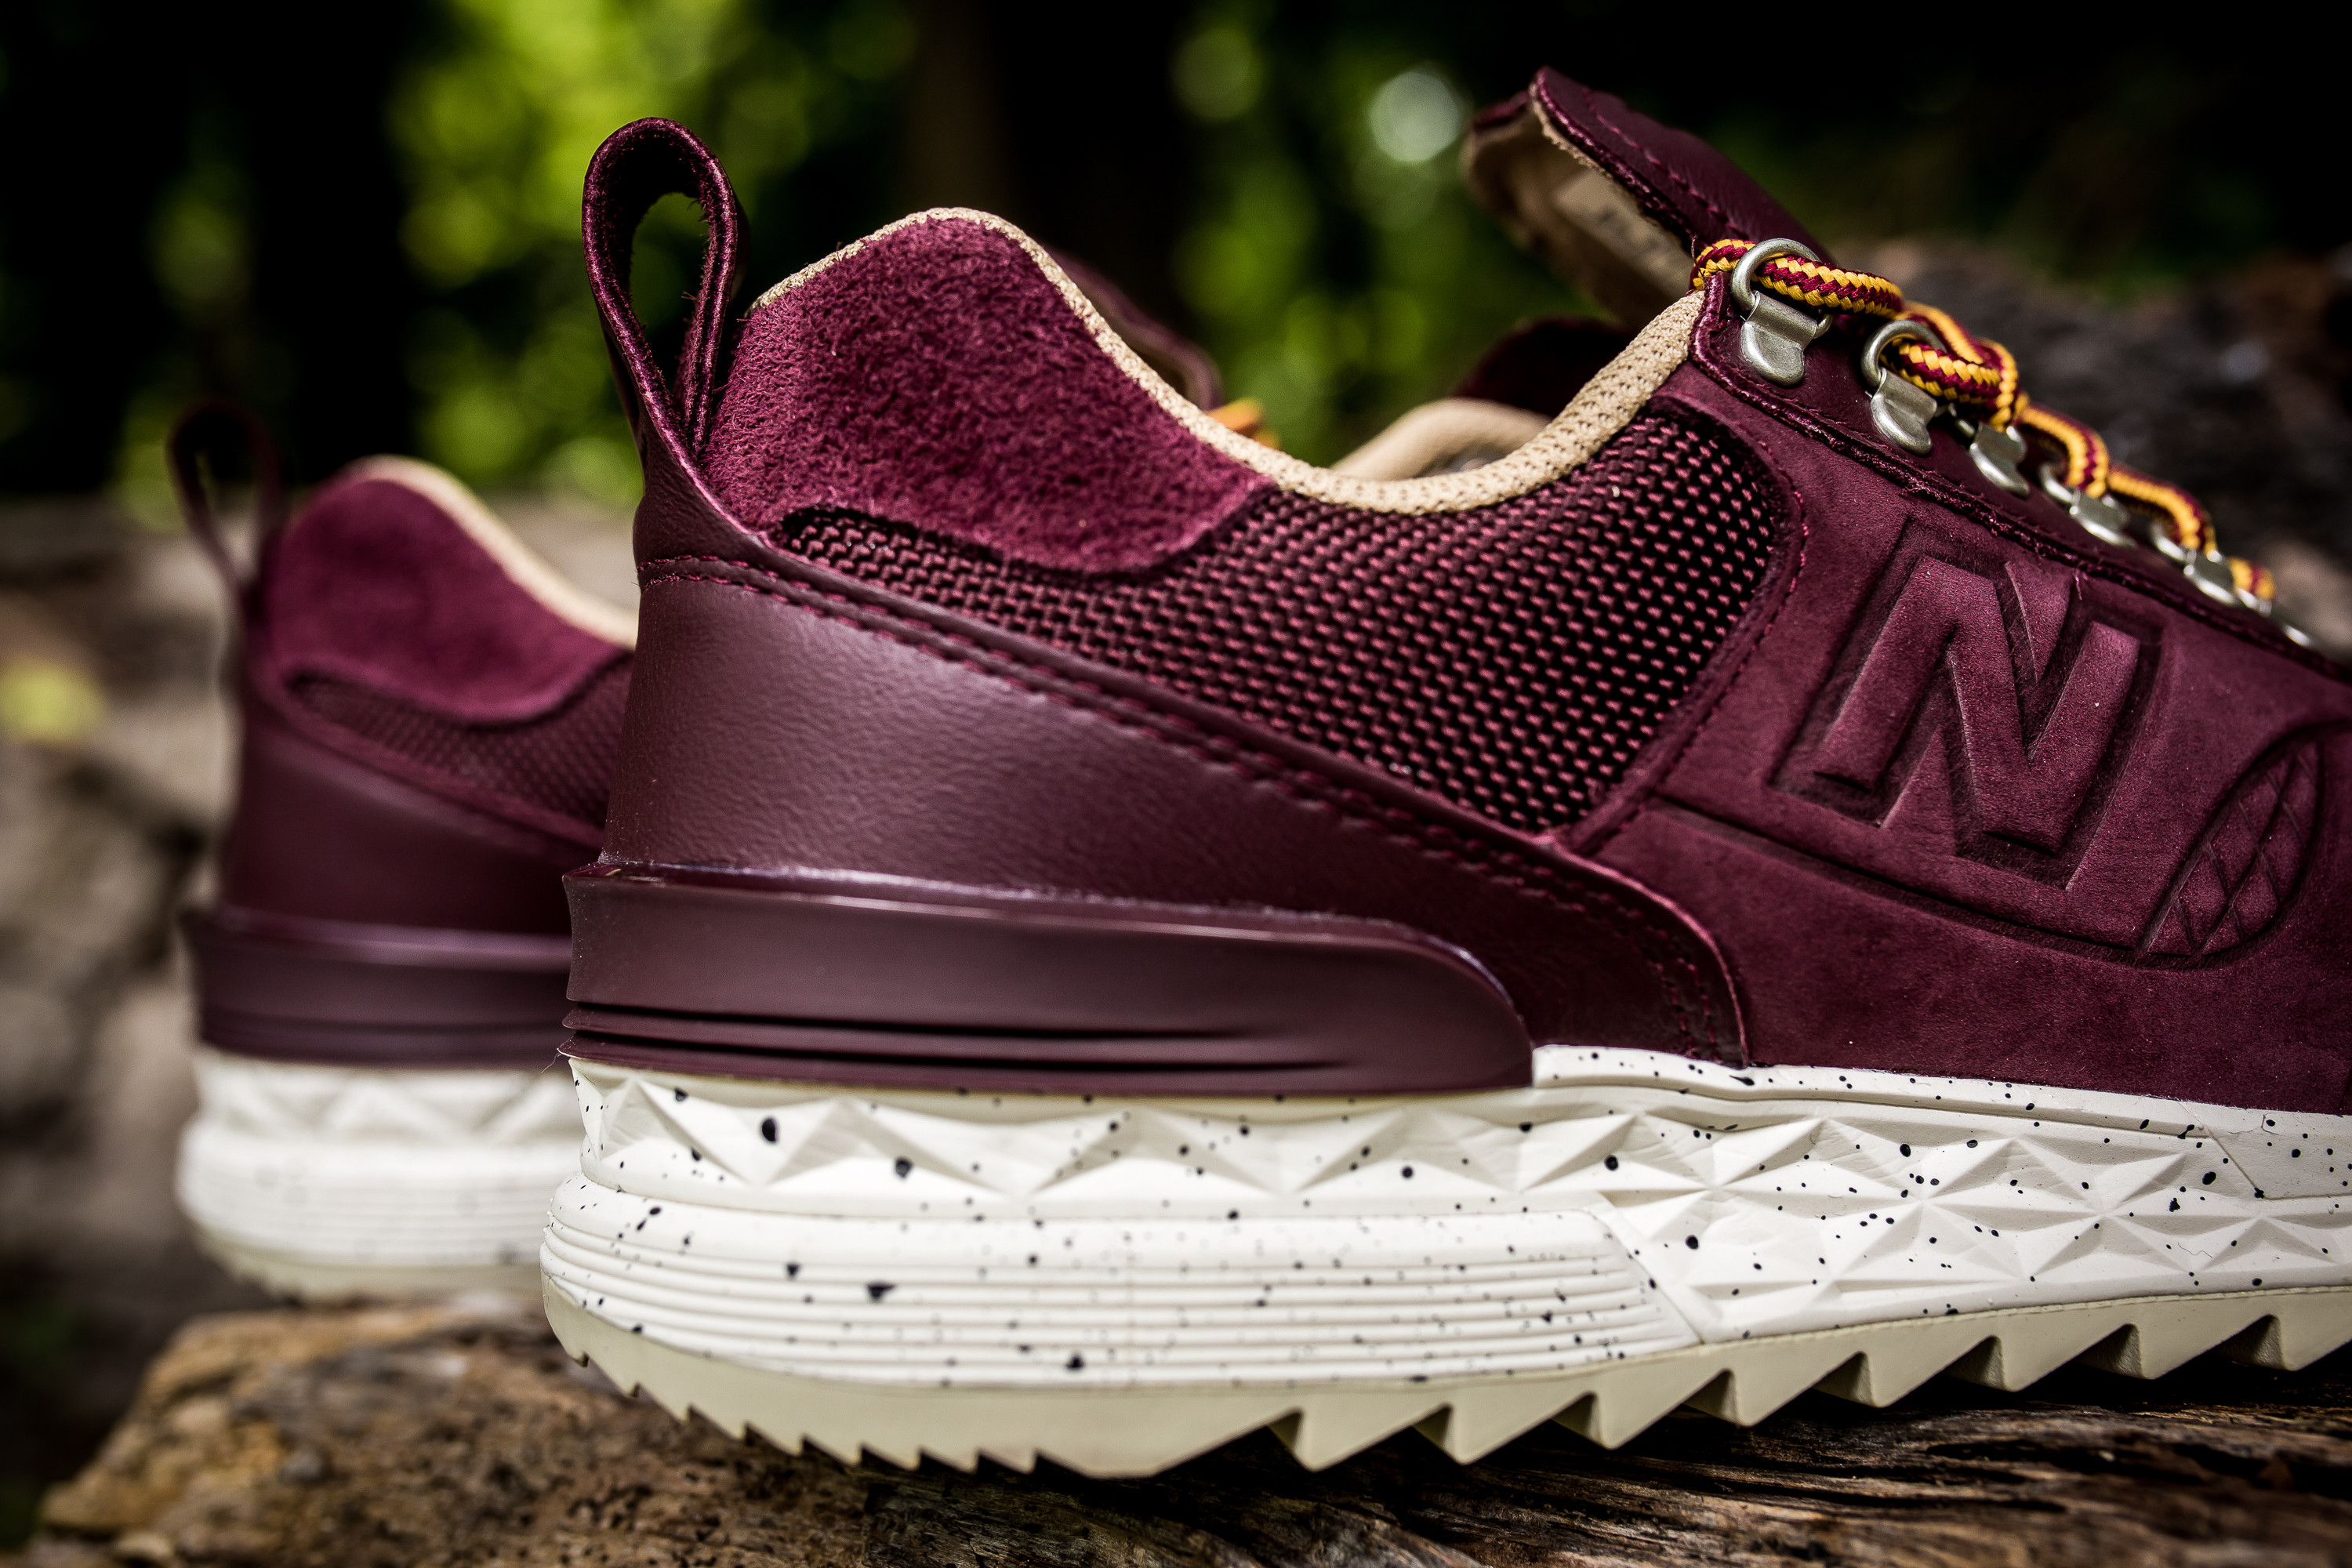 New Balance Packer Shoes